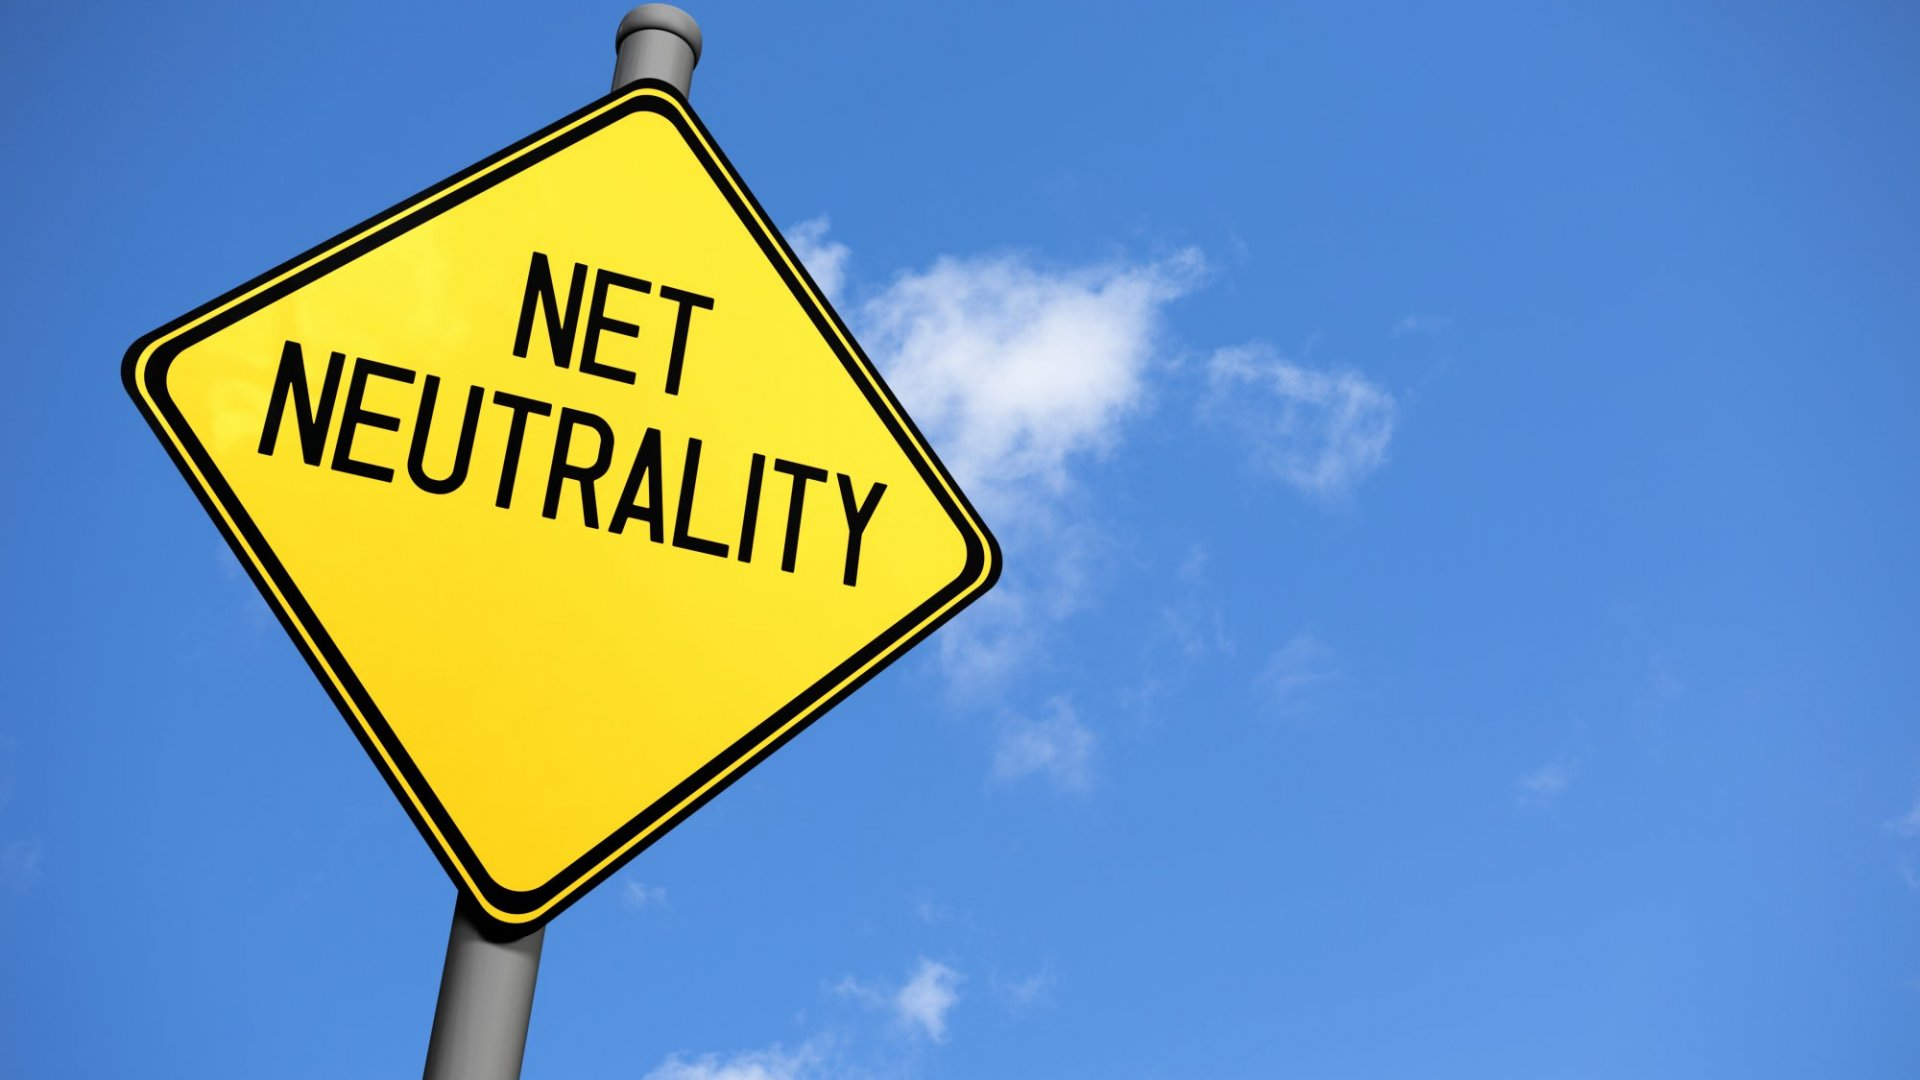 Why Net Neutrality is So Important